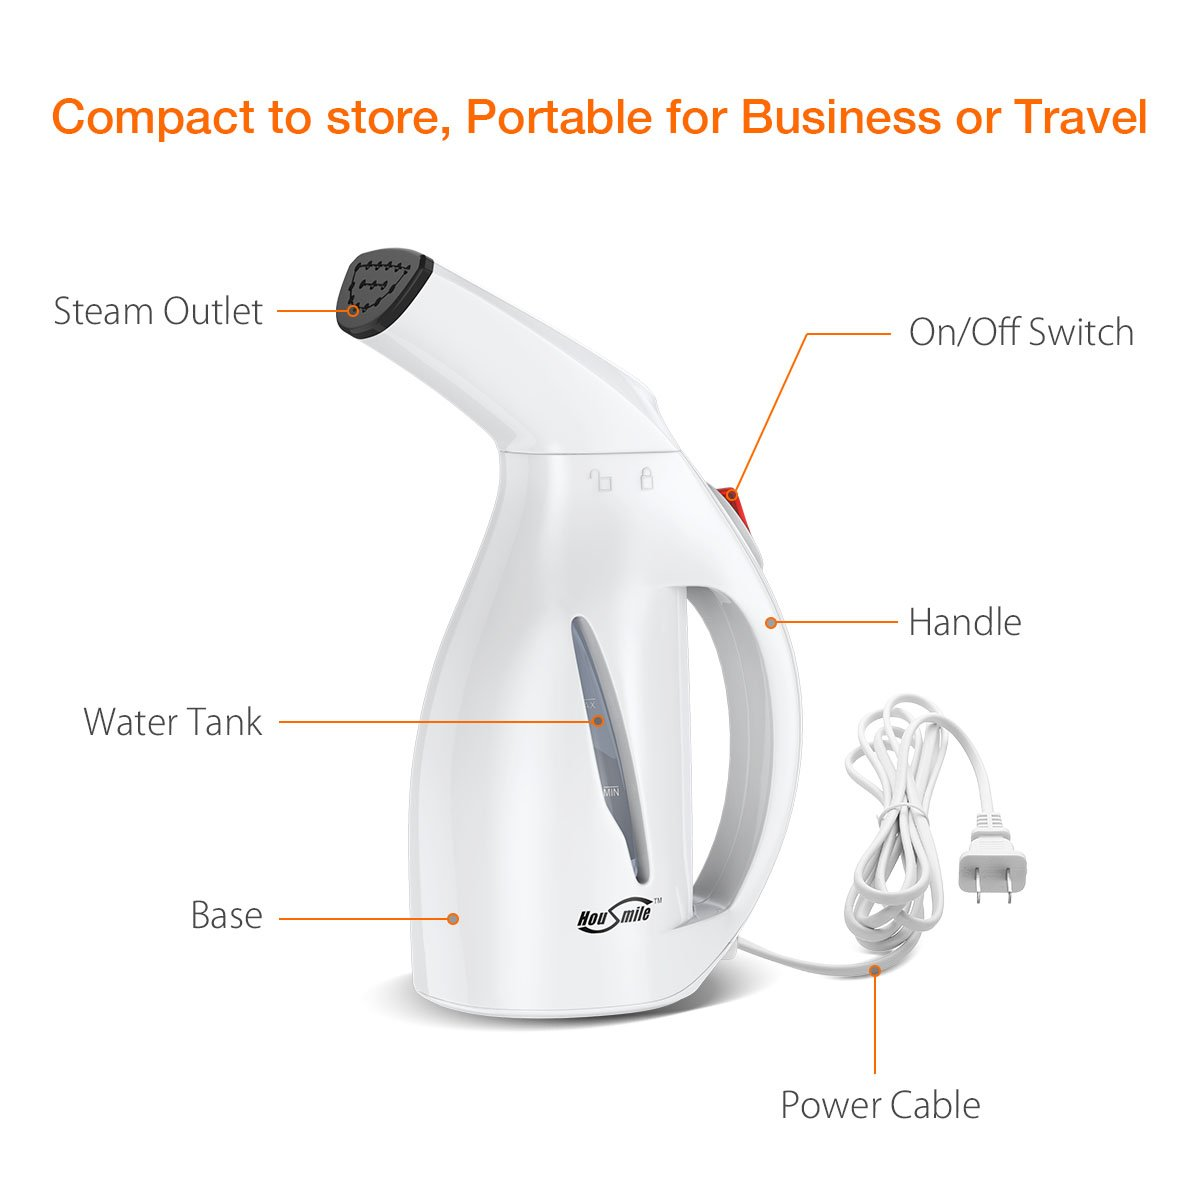 Housmile Garment Steamer 60ml Fast Heat-up Handheld Portable Fabric Clothes Steamer with Brush For Clothes Perfect for Home and Travel